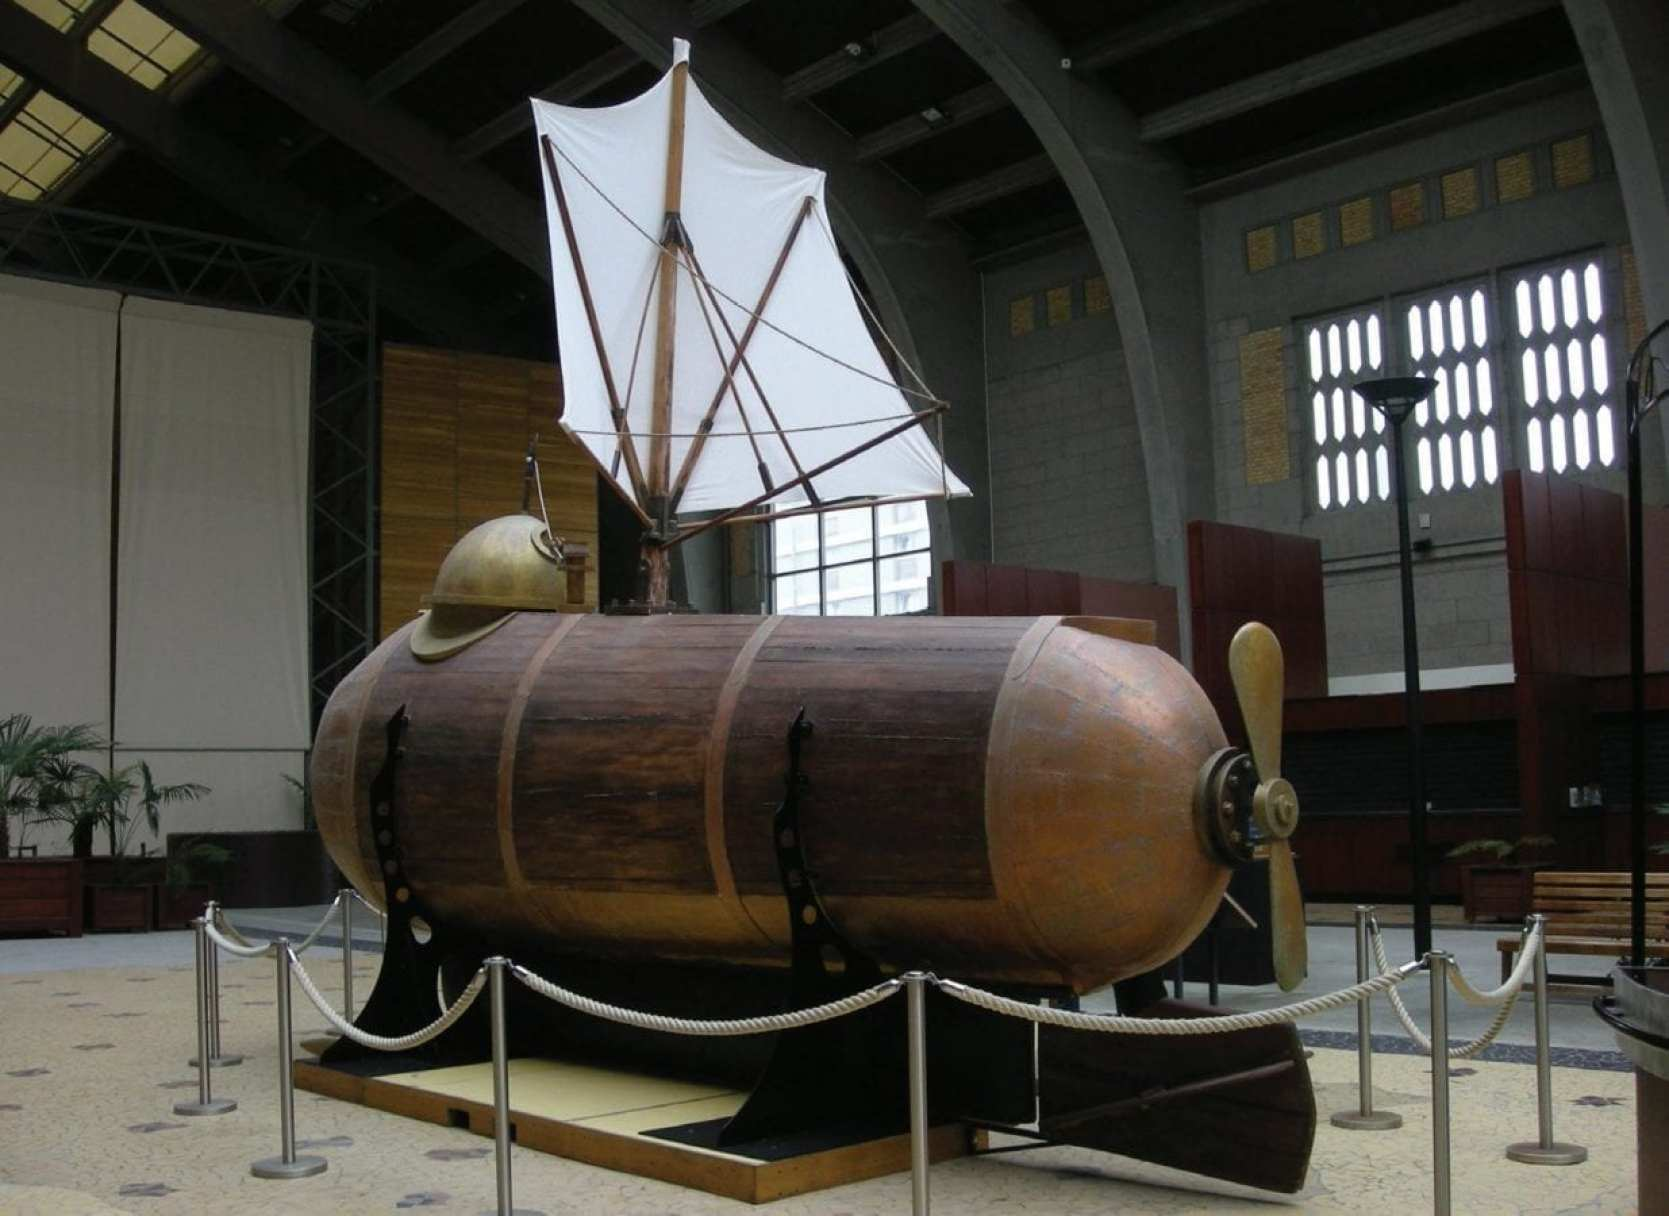 A reconstruction of Robert Fulton's Nautilus, considered the first practical submarine.